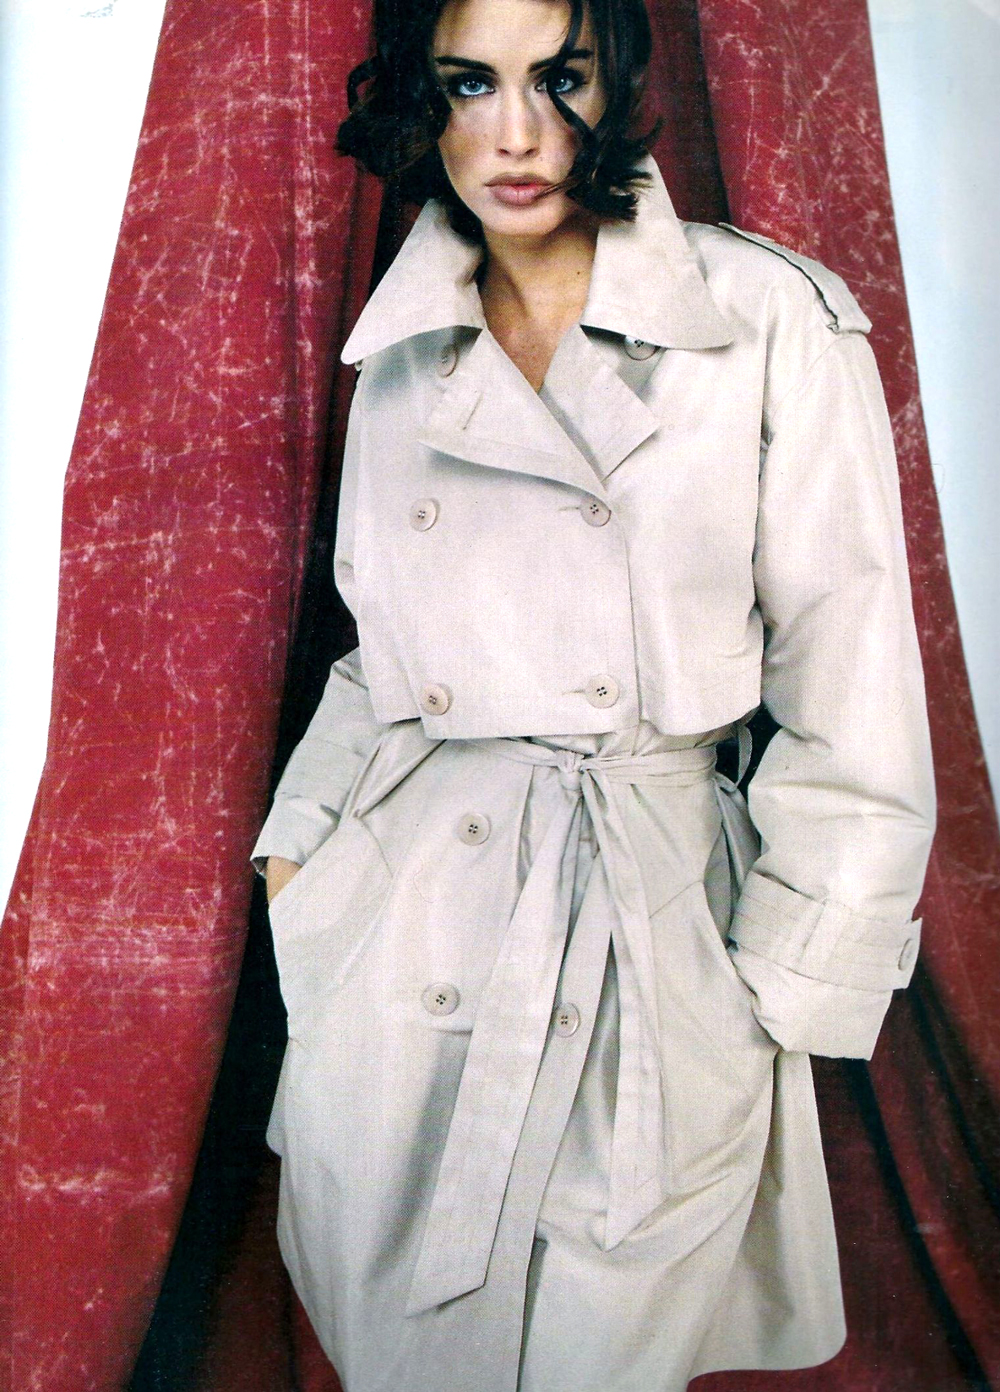 Elle France December 1991 via www.fashionedbylove.co.uk